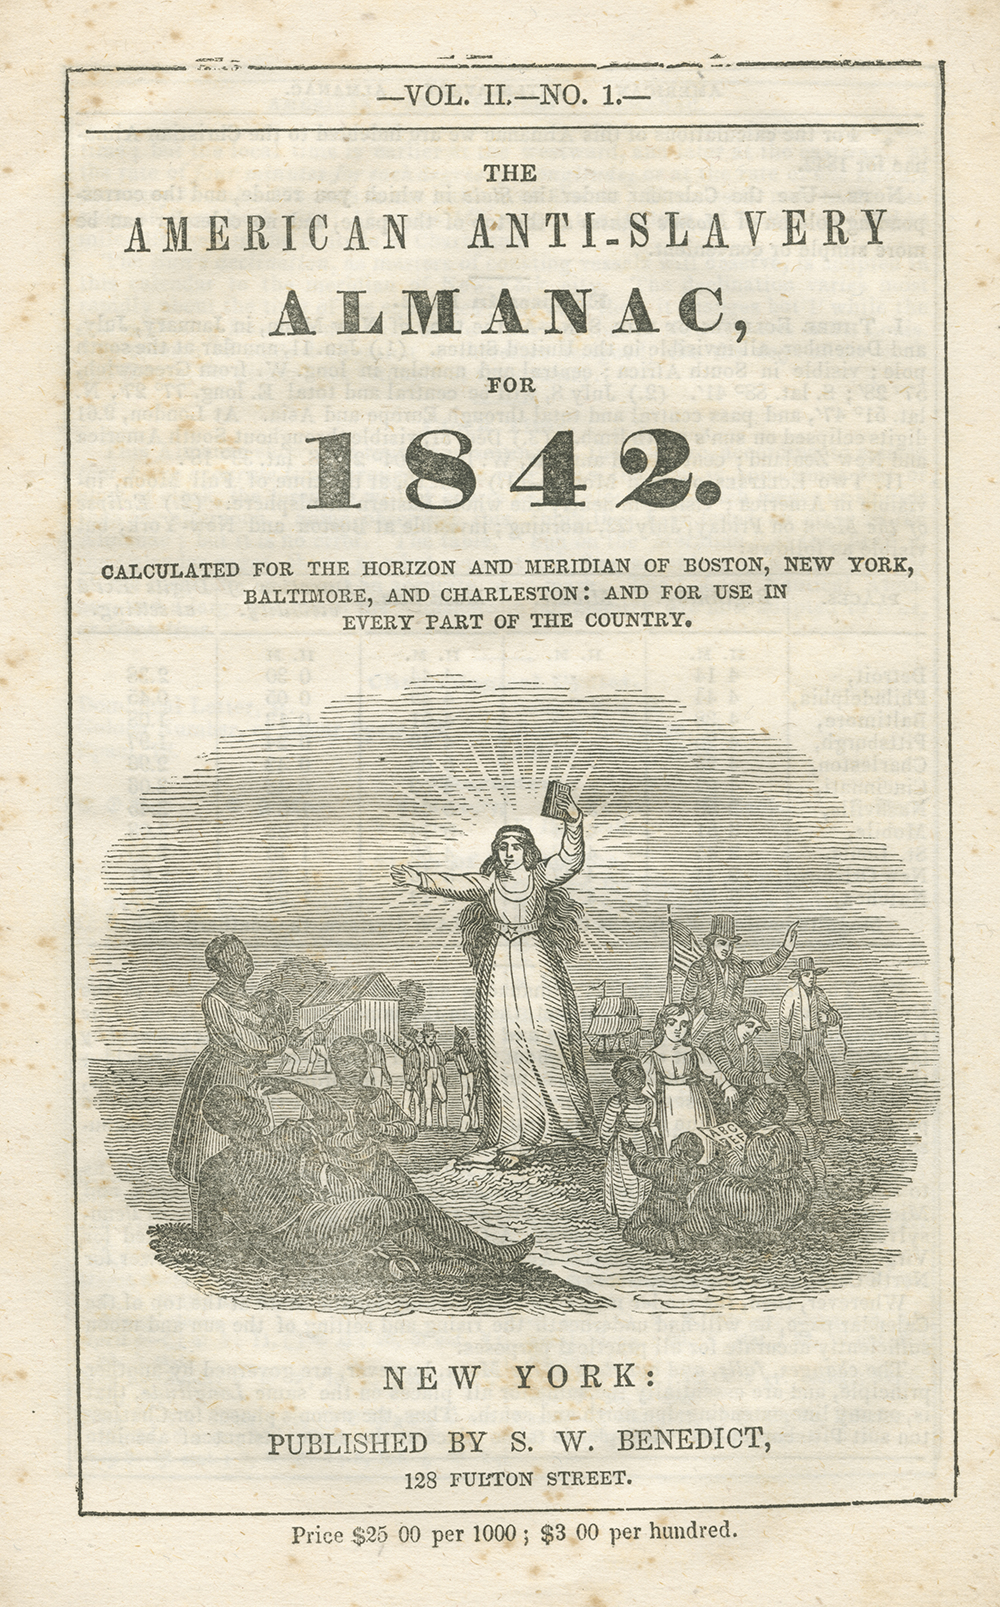 Cover of The American Anti-Slavery Almanac for 1842.